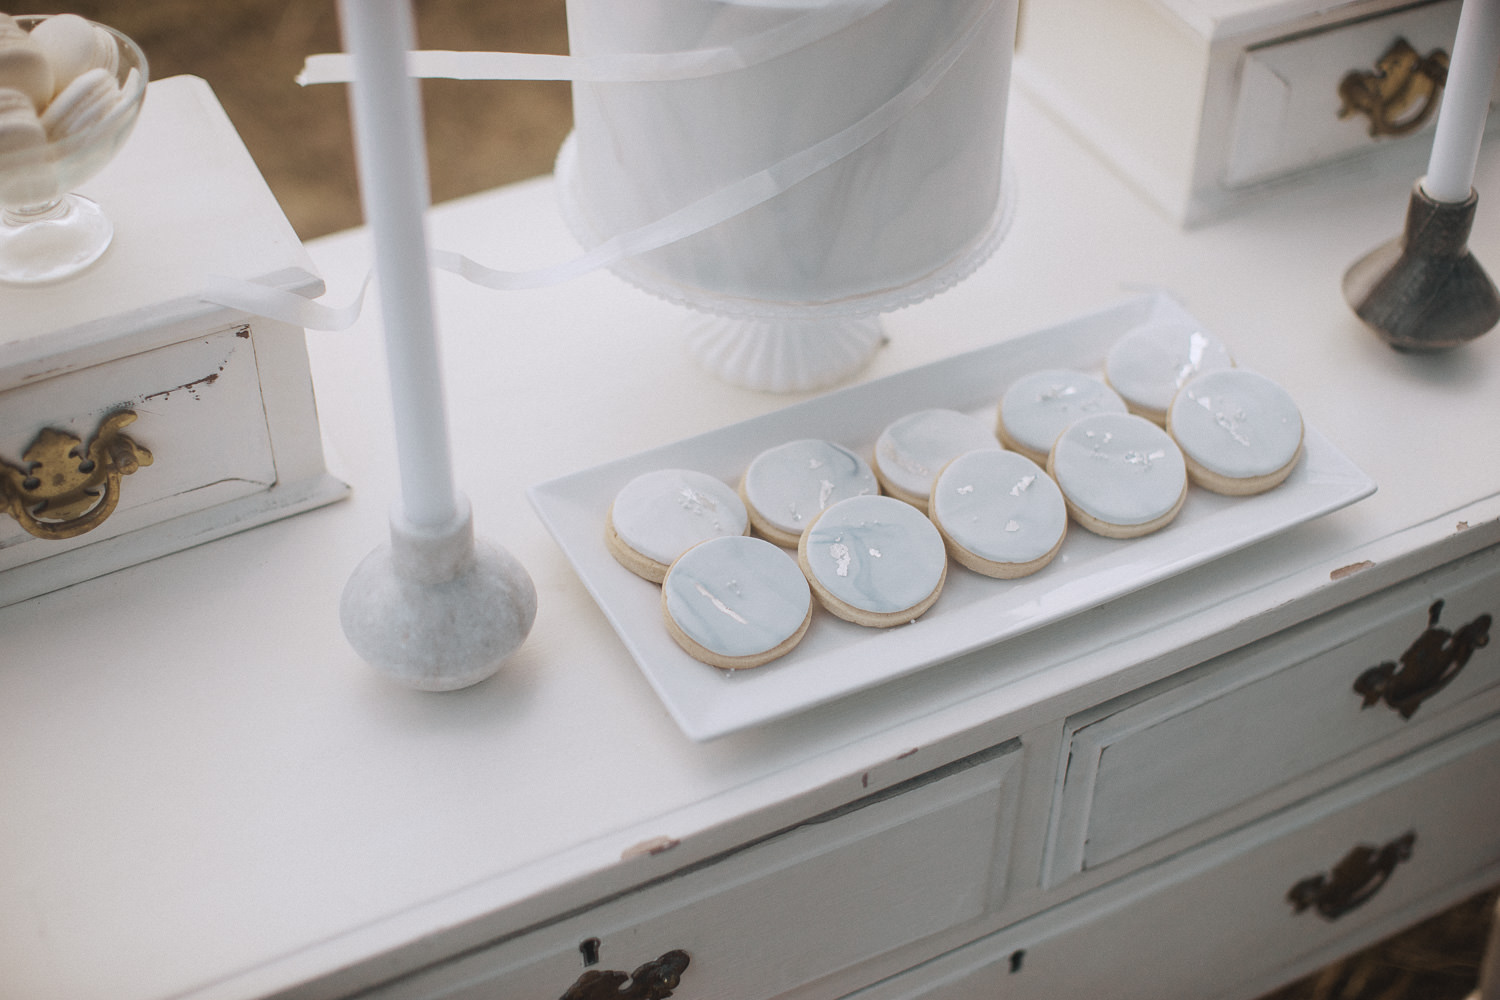 Silver cookies on a dresser by Hayley's piped dreams